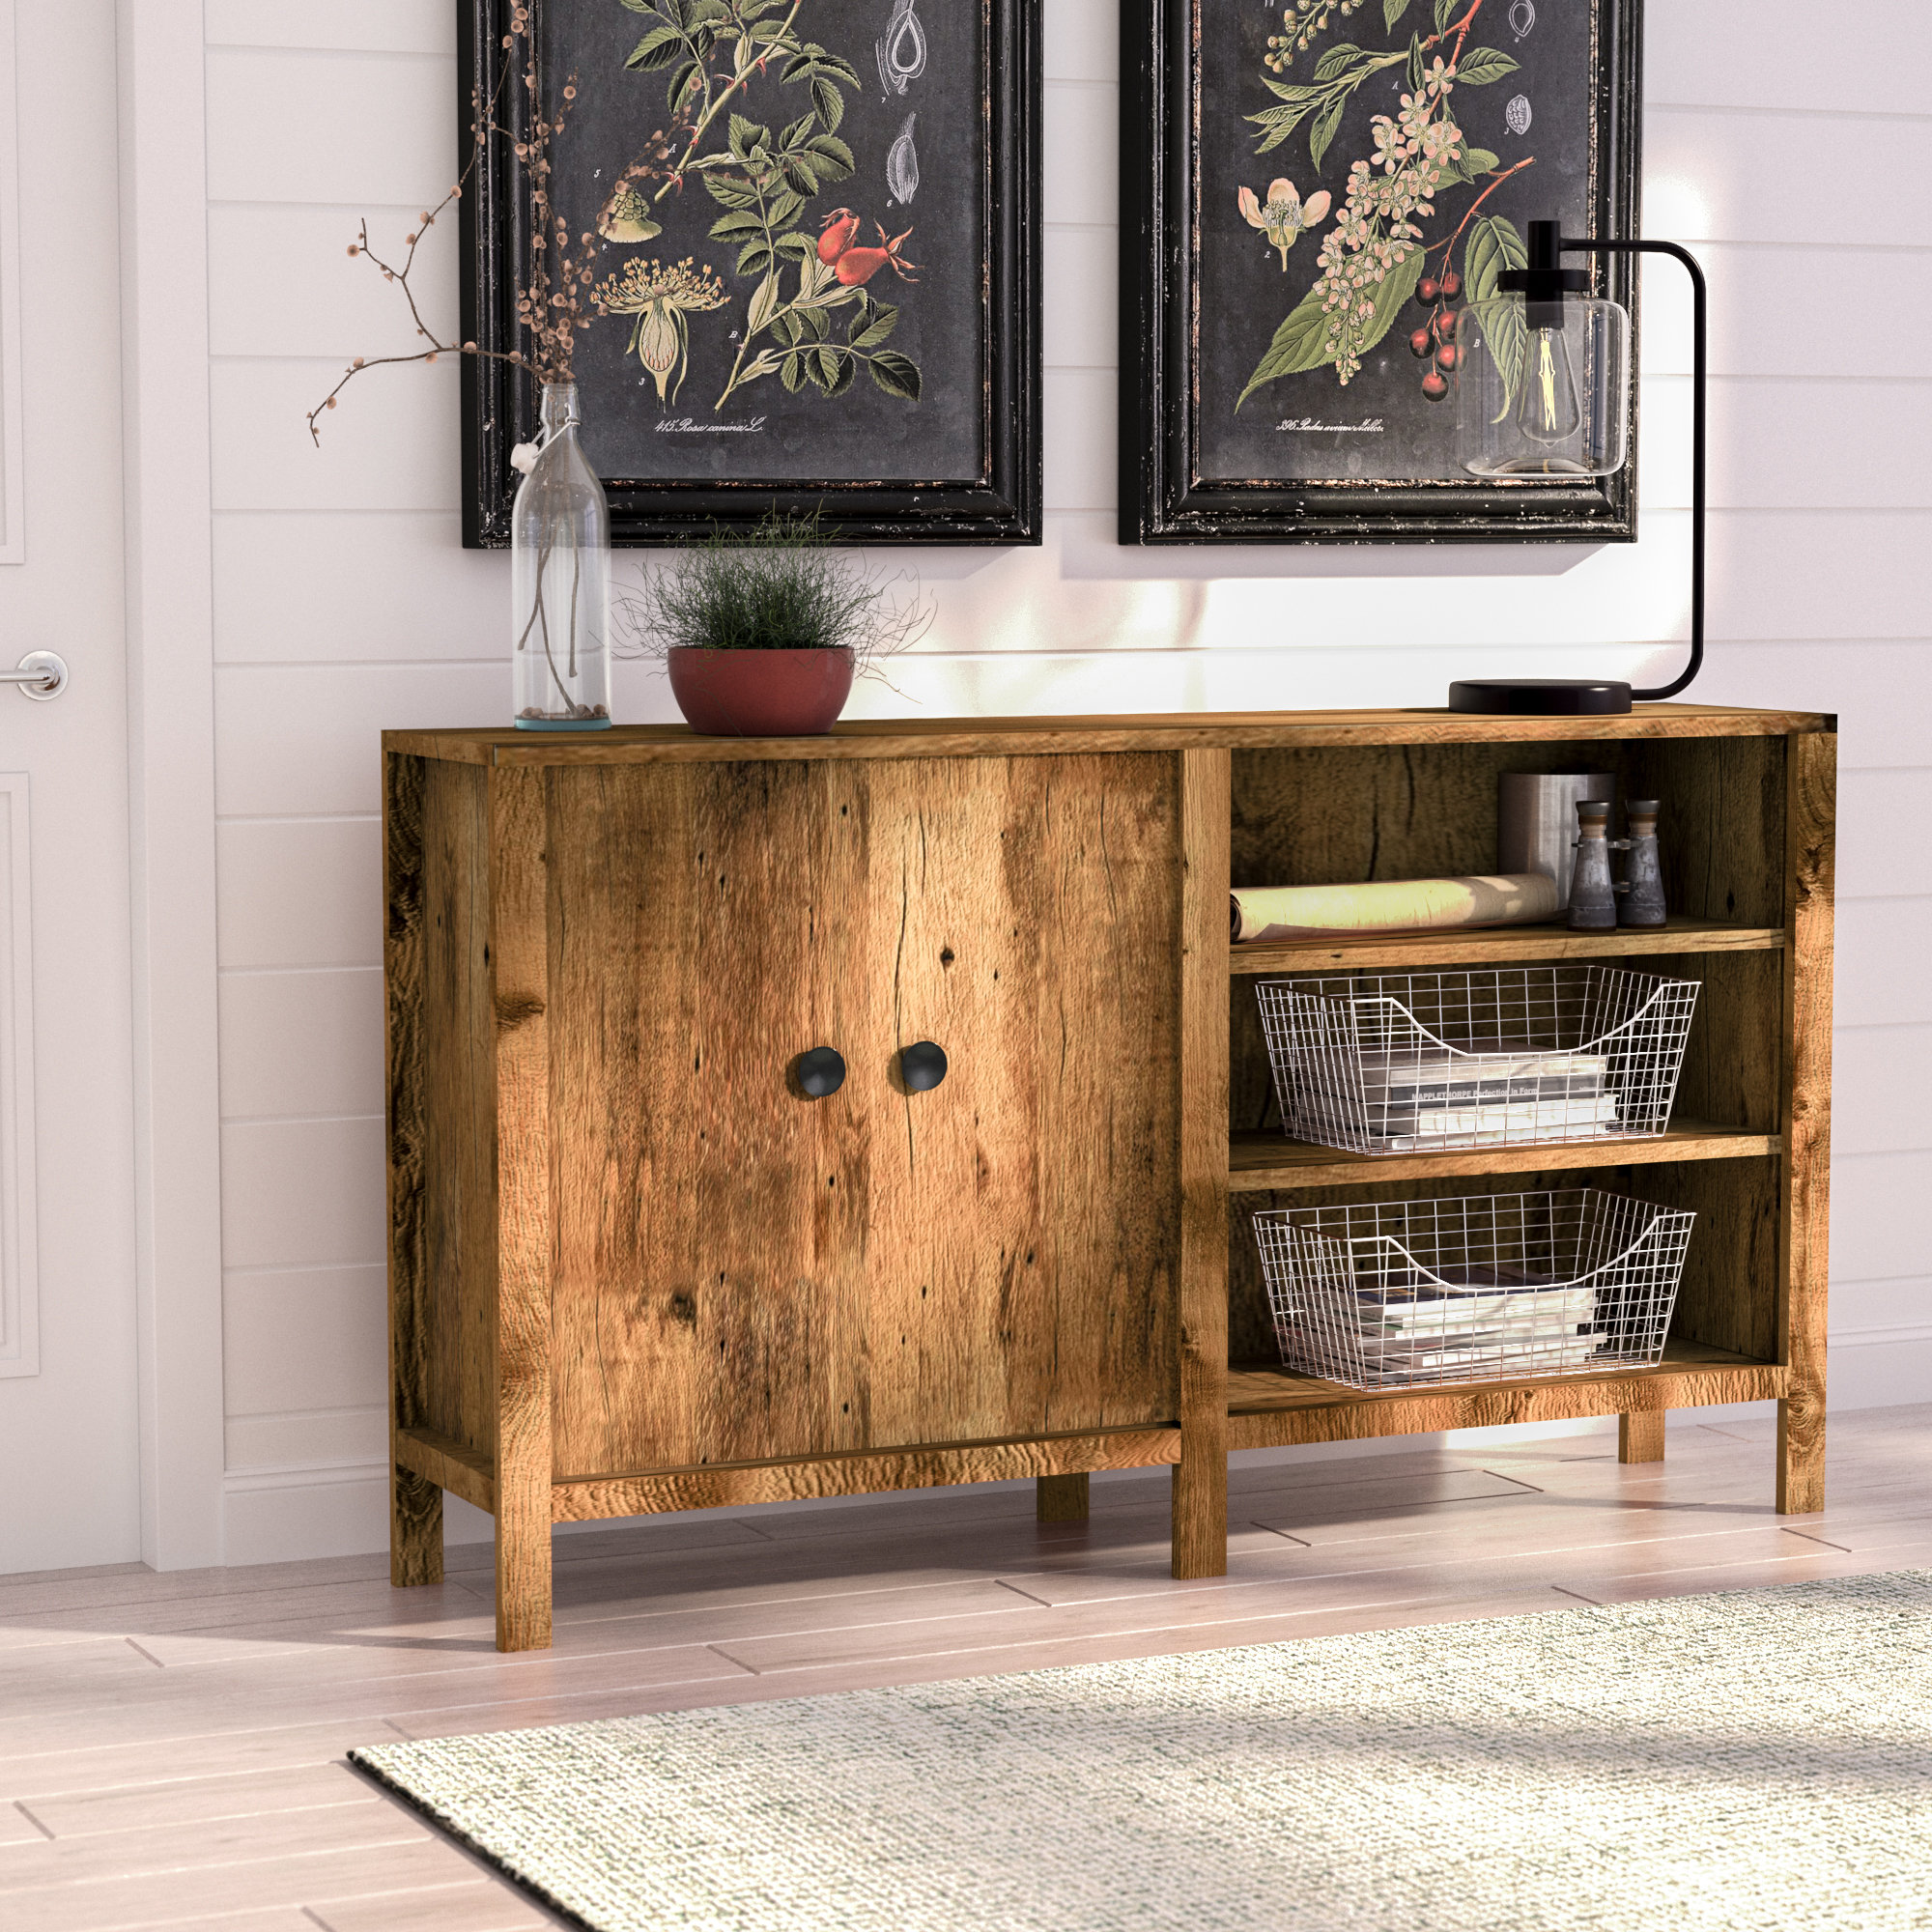 laurel foundry modern farmhouse odile console table reviews accent threshold mango wood ikea storage shelf unit mission style coffee plans dining linen company canadian tire lawn